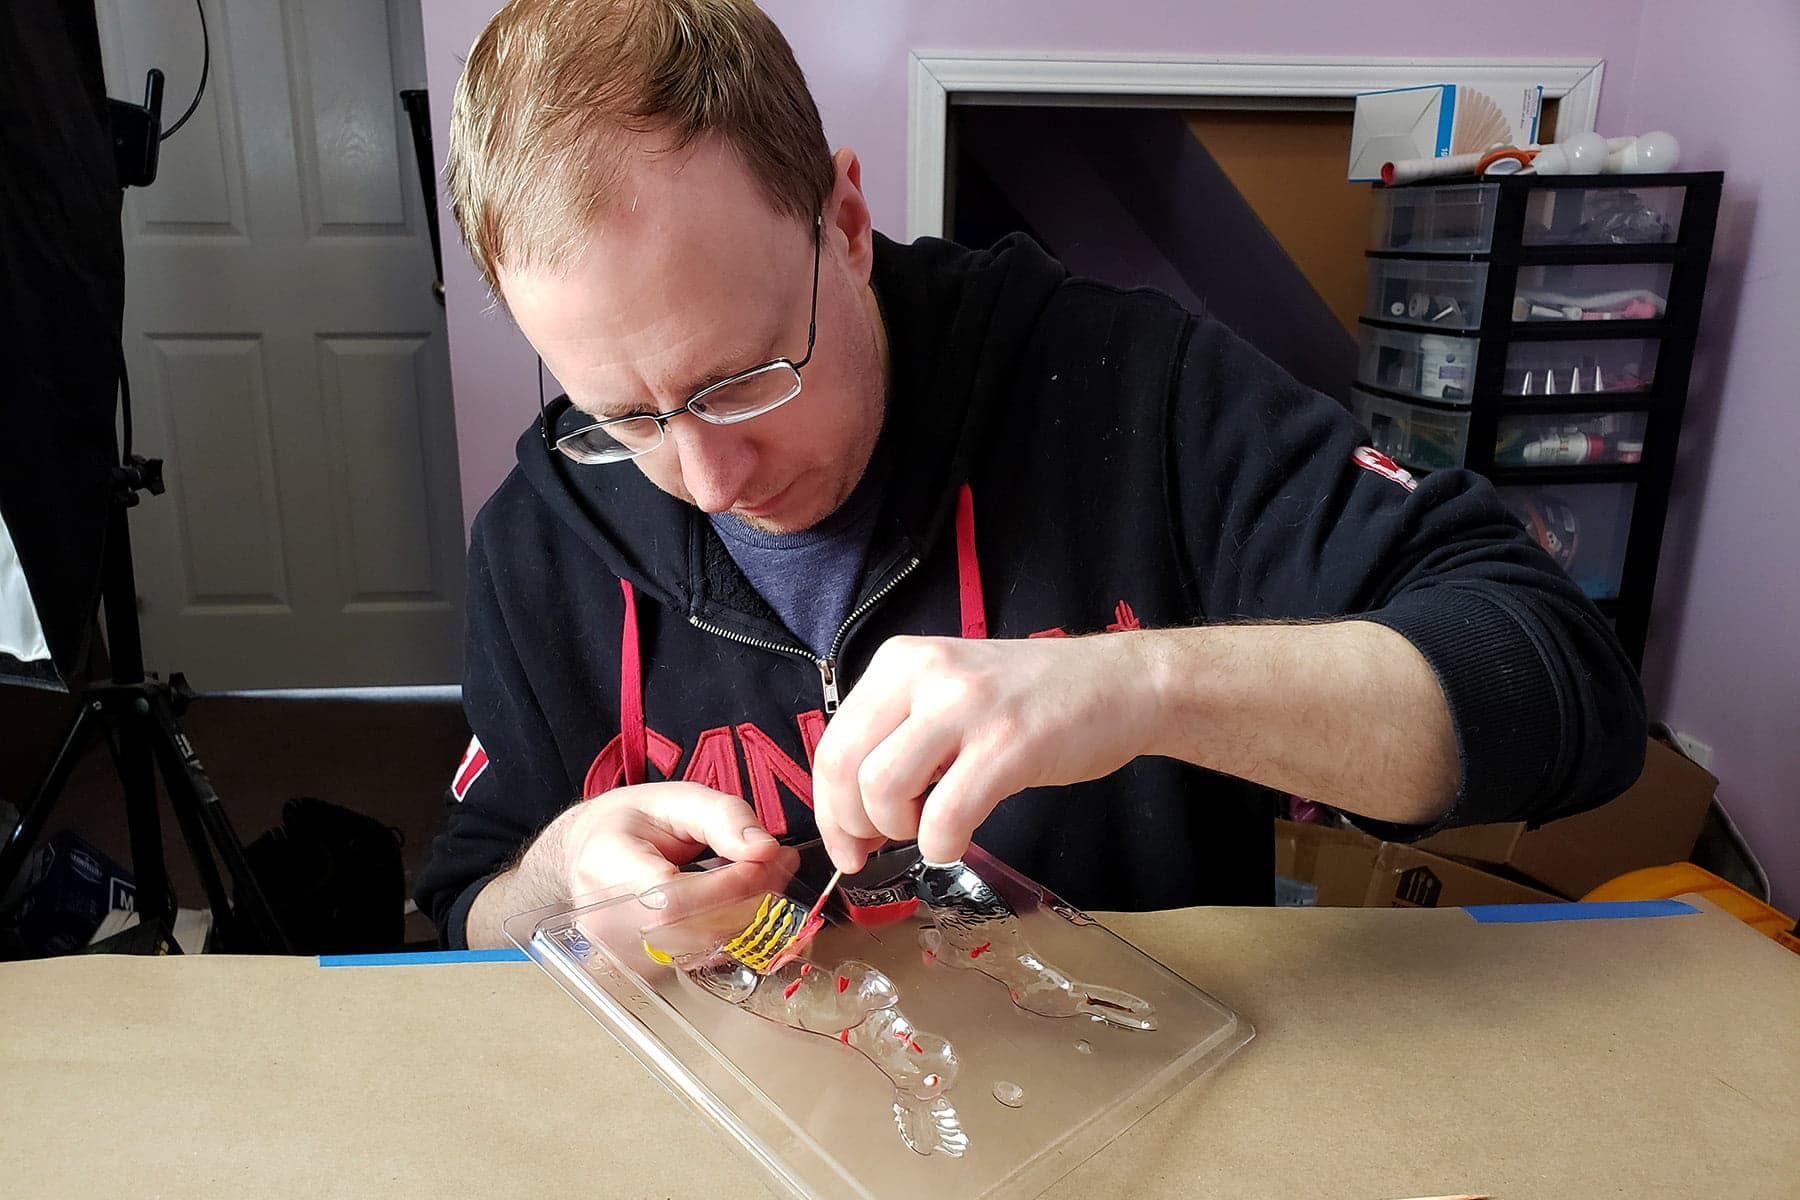 A blond man uses a toothpick to apply melted candy to the details of a clear plastic bunny mold.